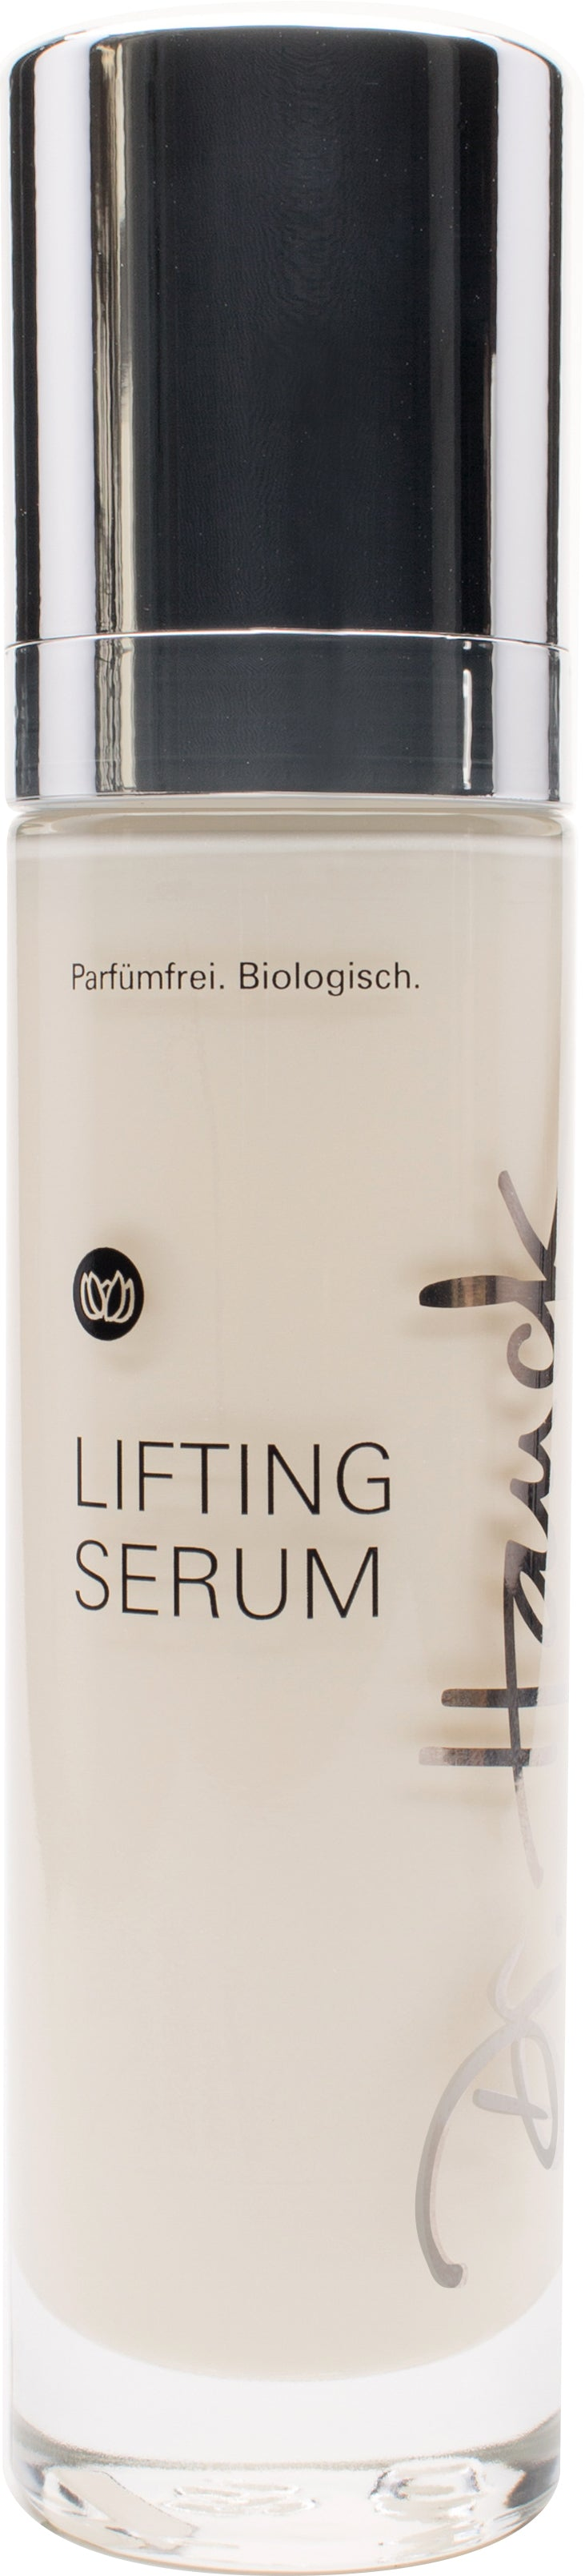 Dr. Hauck Lifting Serum 50ml